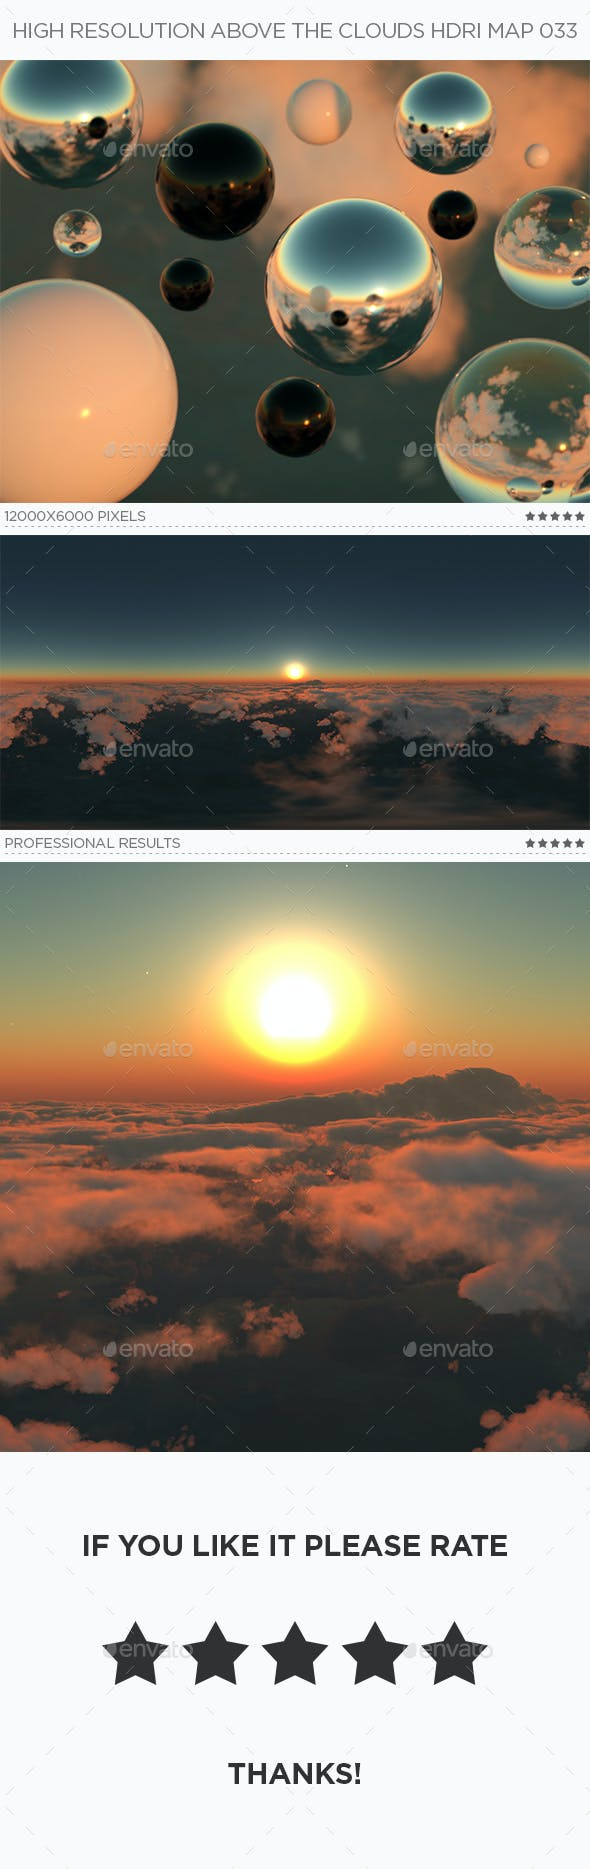 High Resolution Above The Clouds HDRi Map 033 - 3DOcean Item for Sale